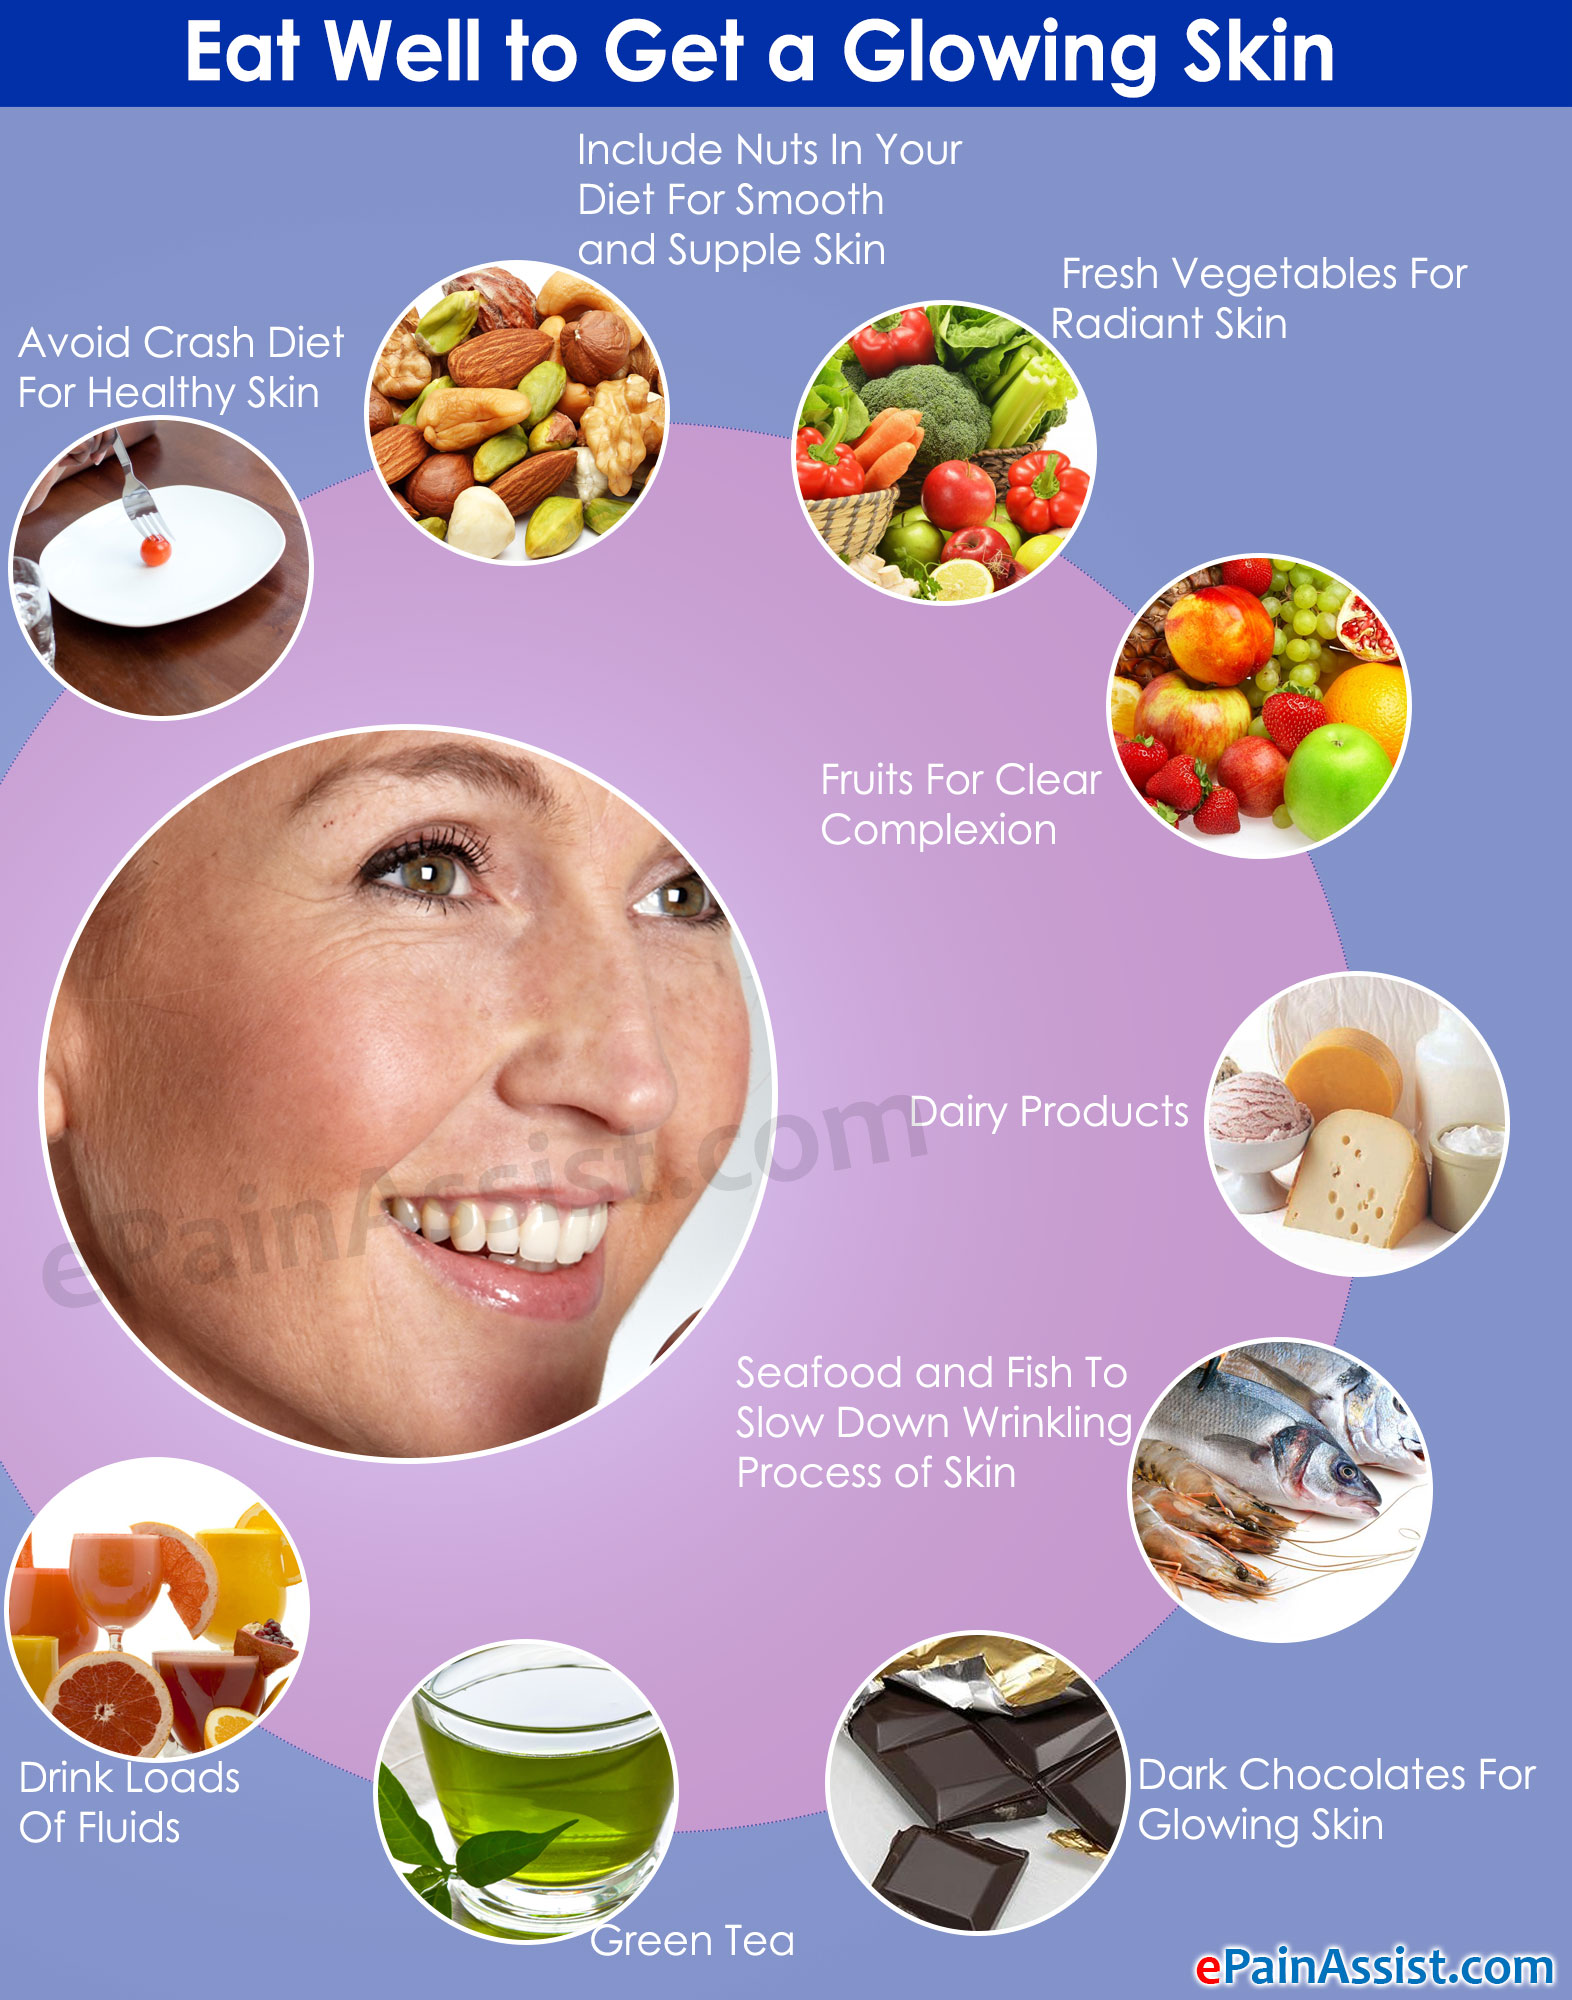 Eat Well to get a glowing skin